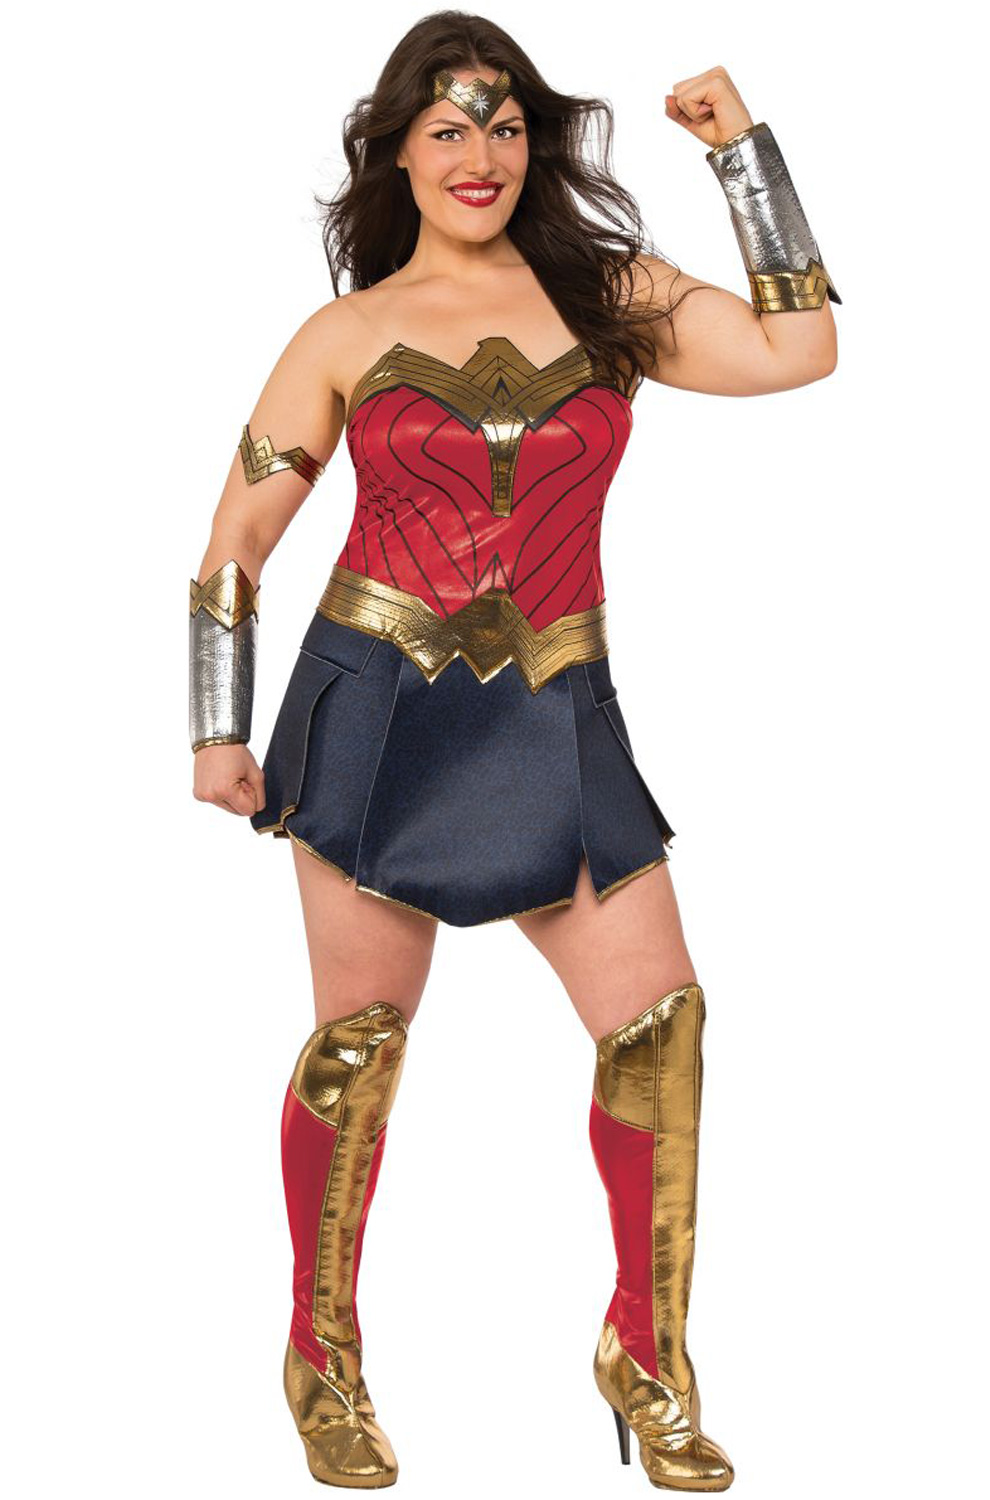 Plus size costumes purecostumes jl deluxe woman woman plus size costume solutioingenieria Image collections